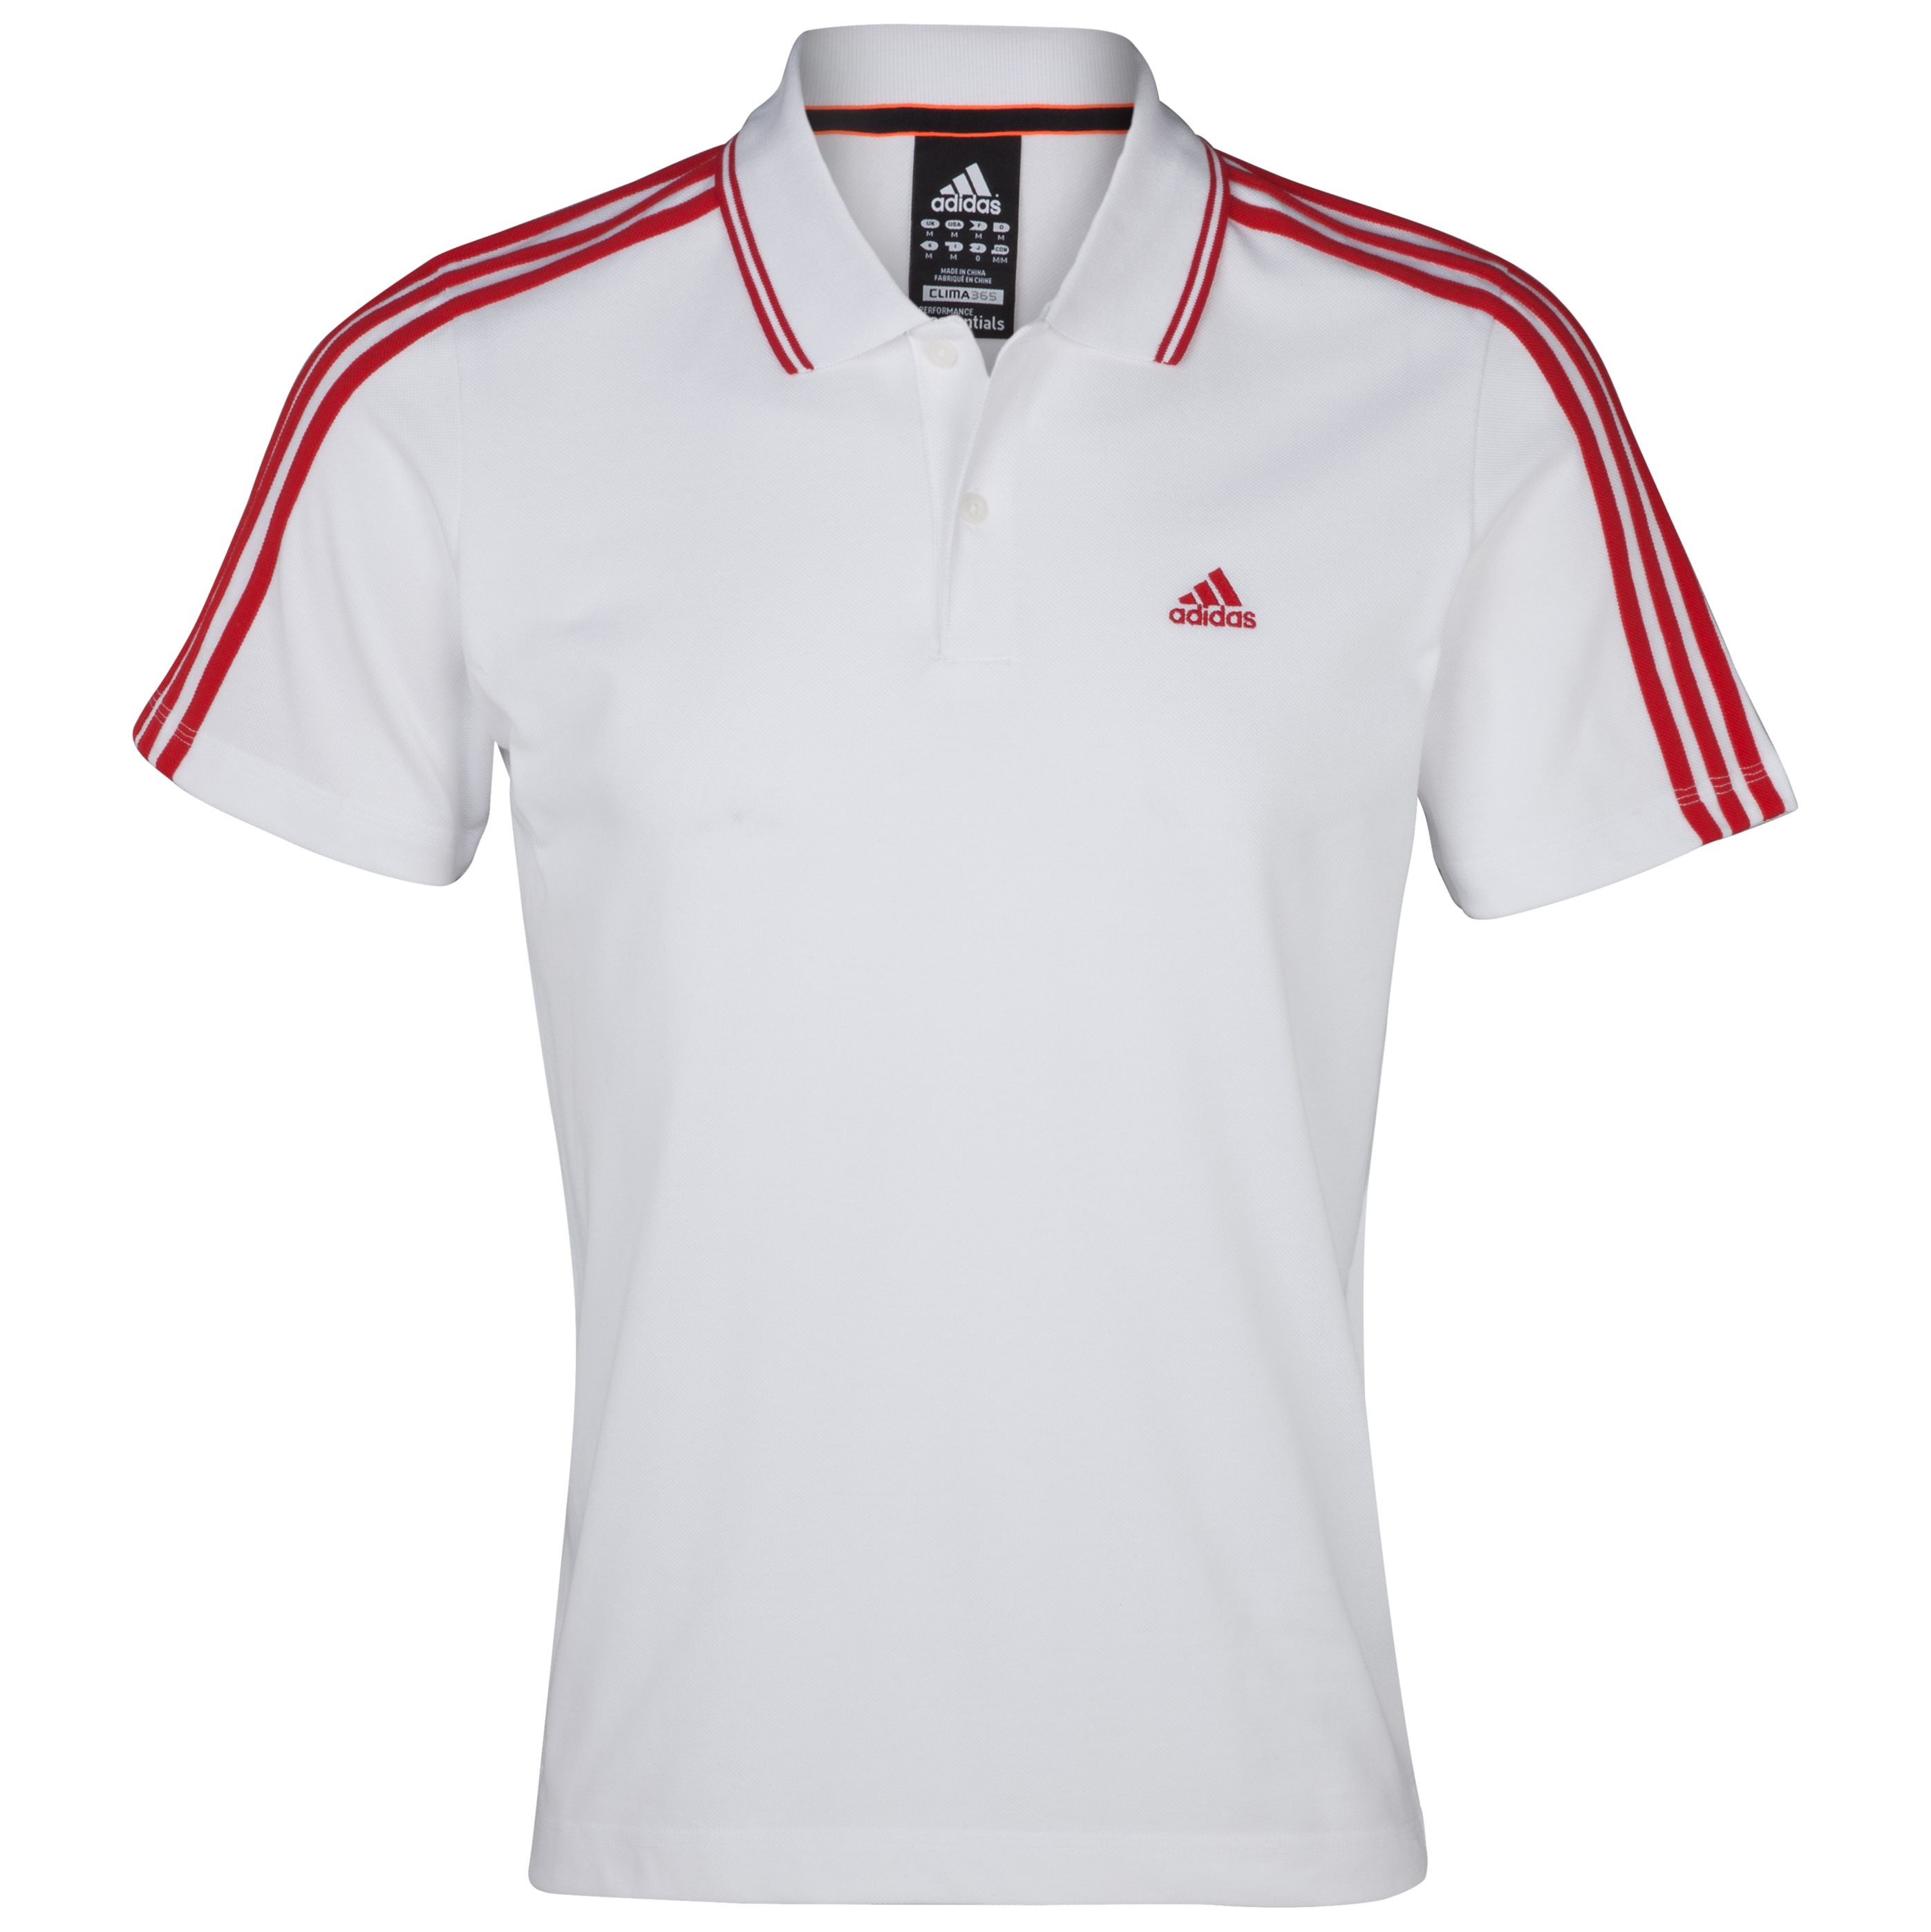 Adidas Essentials 3 Stripe Polo - White/Red S09